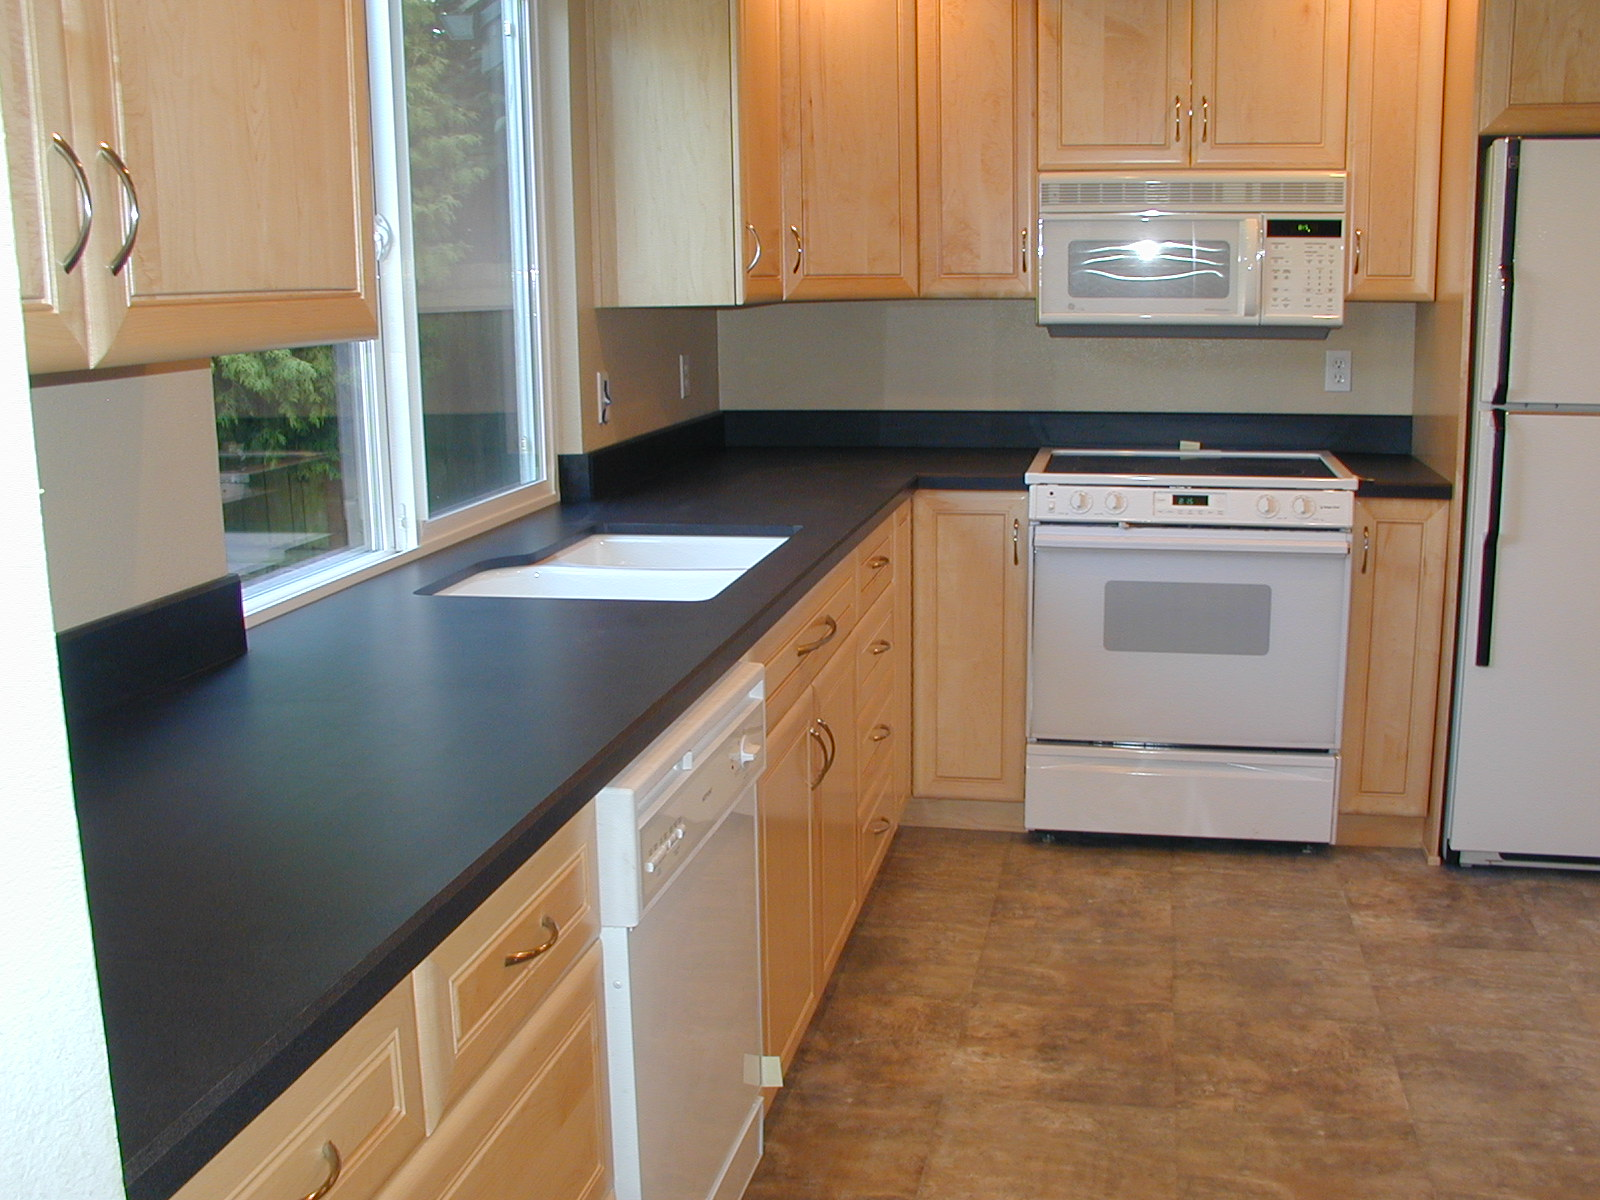 countertop design and installation, laminate kitchen countertop ...